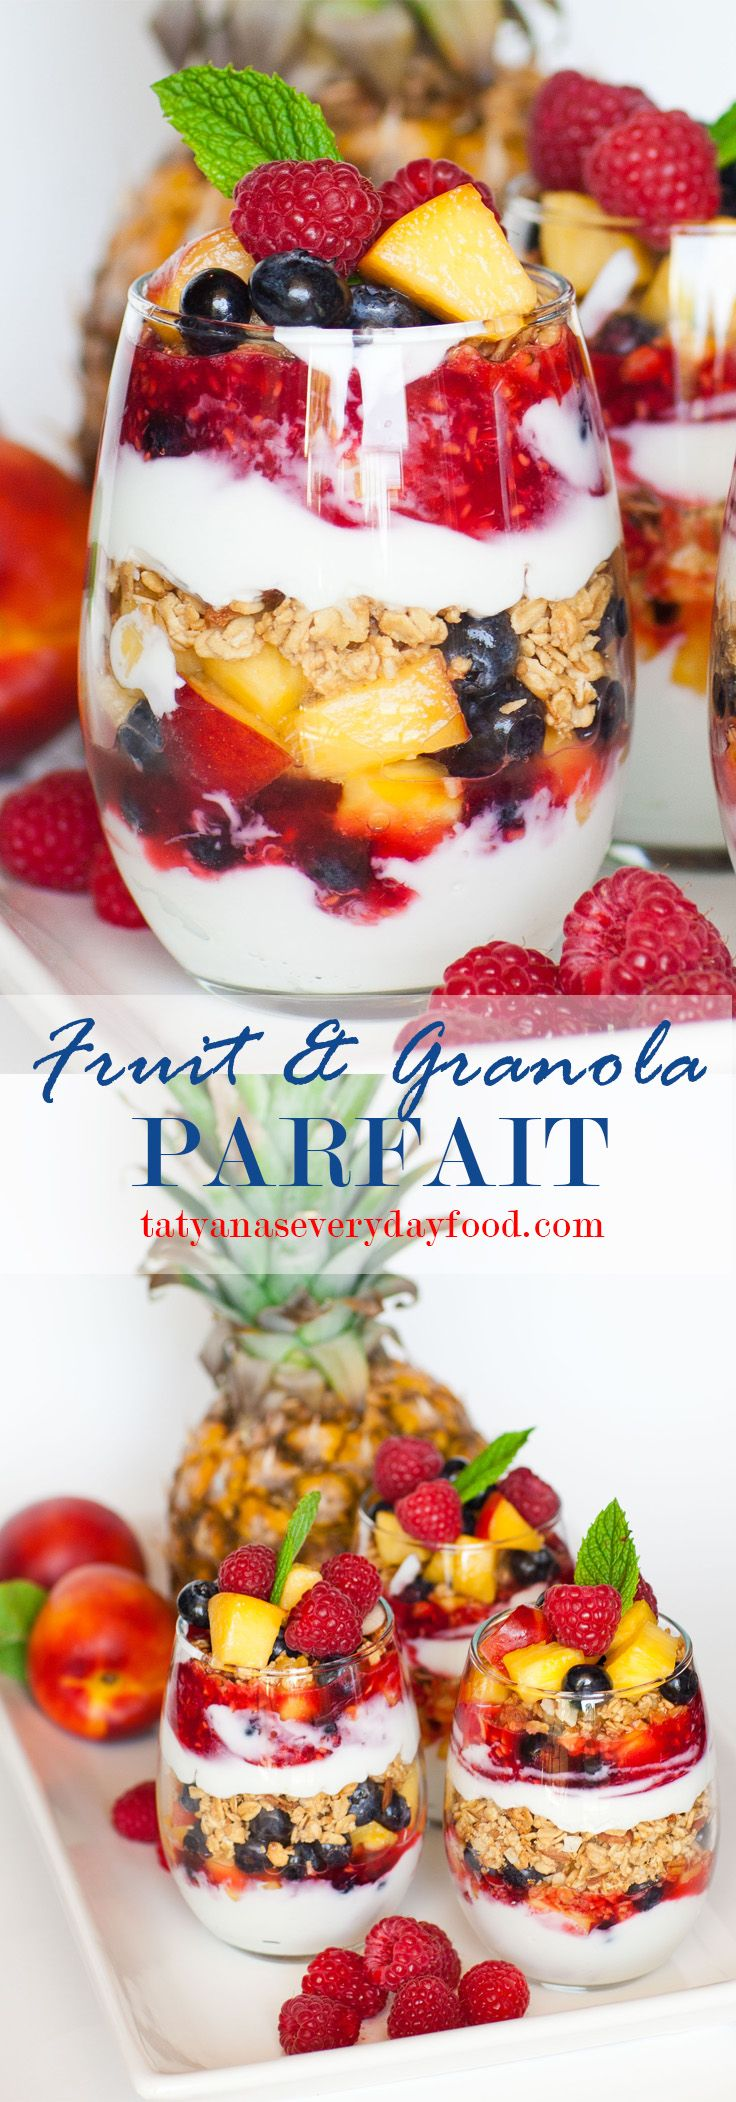 fruit parfait, greek yogurt, granola parfait, dessert, #fruit #dessert, breakfast, snack, yogurt parfait, #raspberry, #pineapple